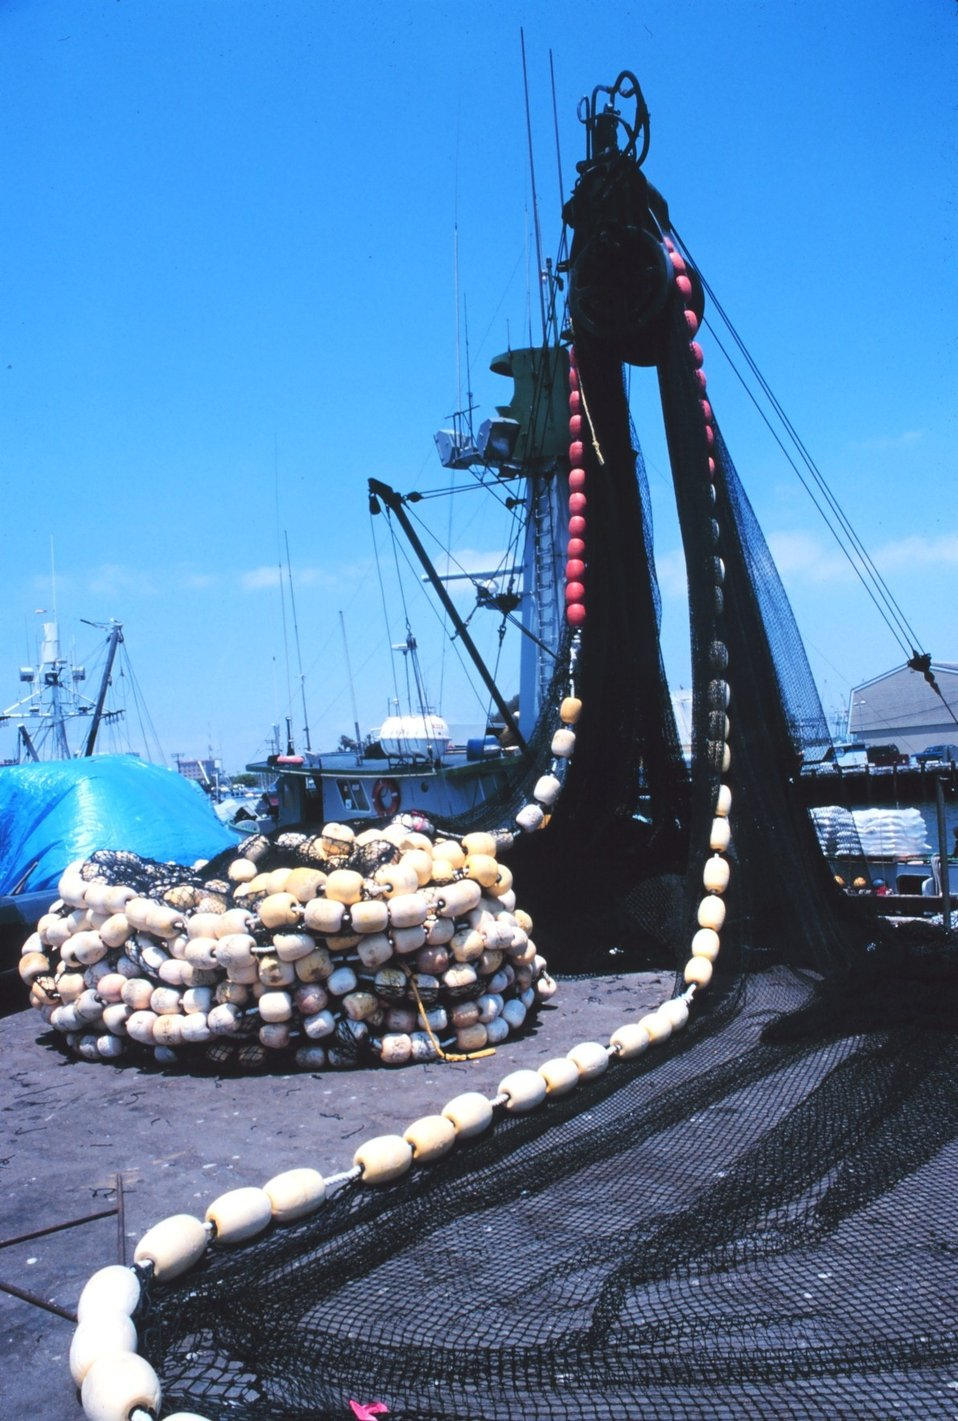 The paraphernalia of fishing on the pier - mountains of nets, floats, etc.